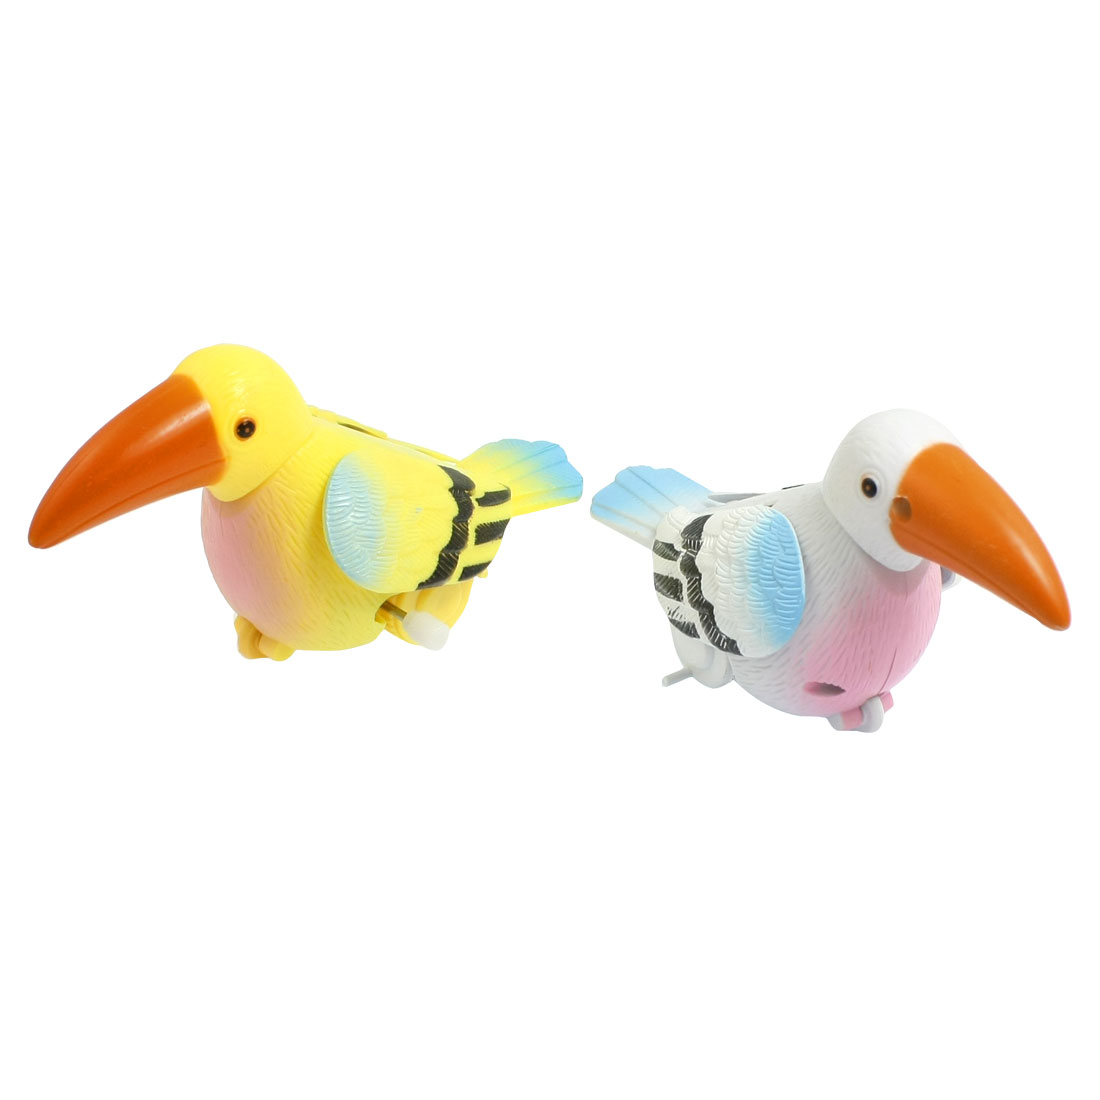 2 Pcs Children Playing Plastic Woodpecker Clockwork Spring Toy Yellow White